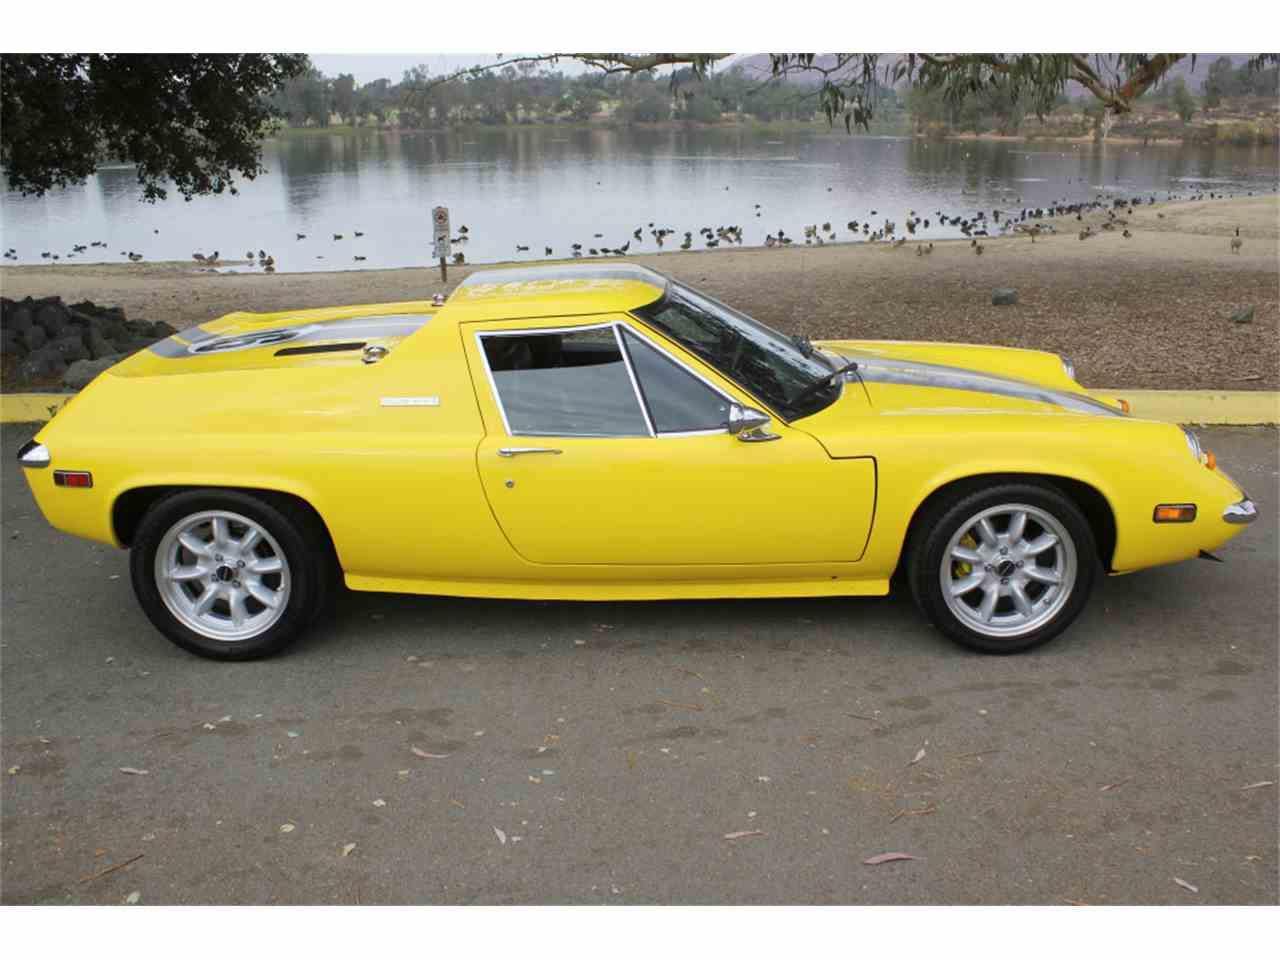 https://ccmarketplace.azureedge.net/cc-temp/listing/105/7263/10728141-1973-lotus-europa-std-c.jpg